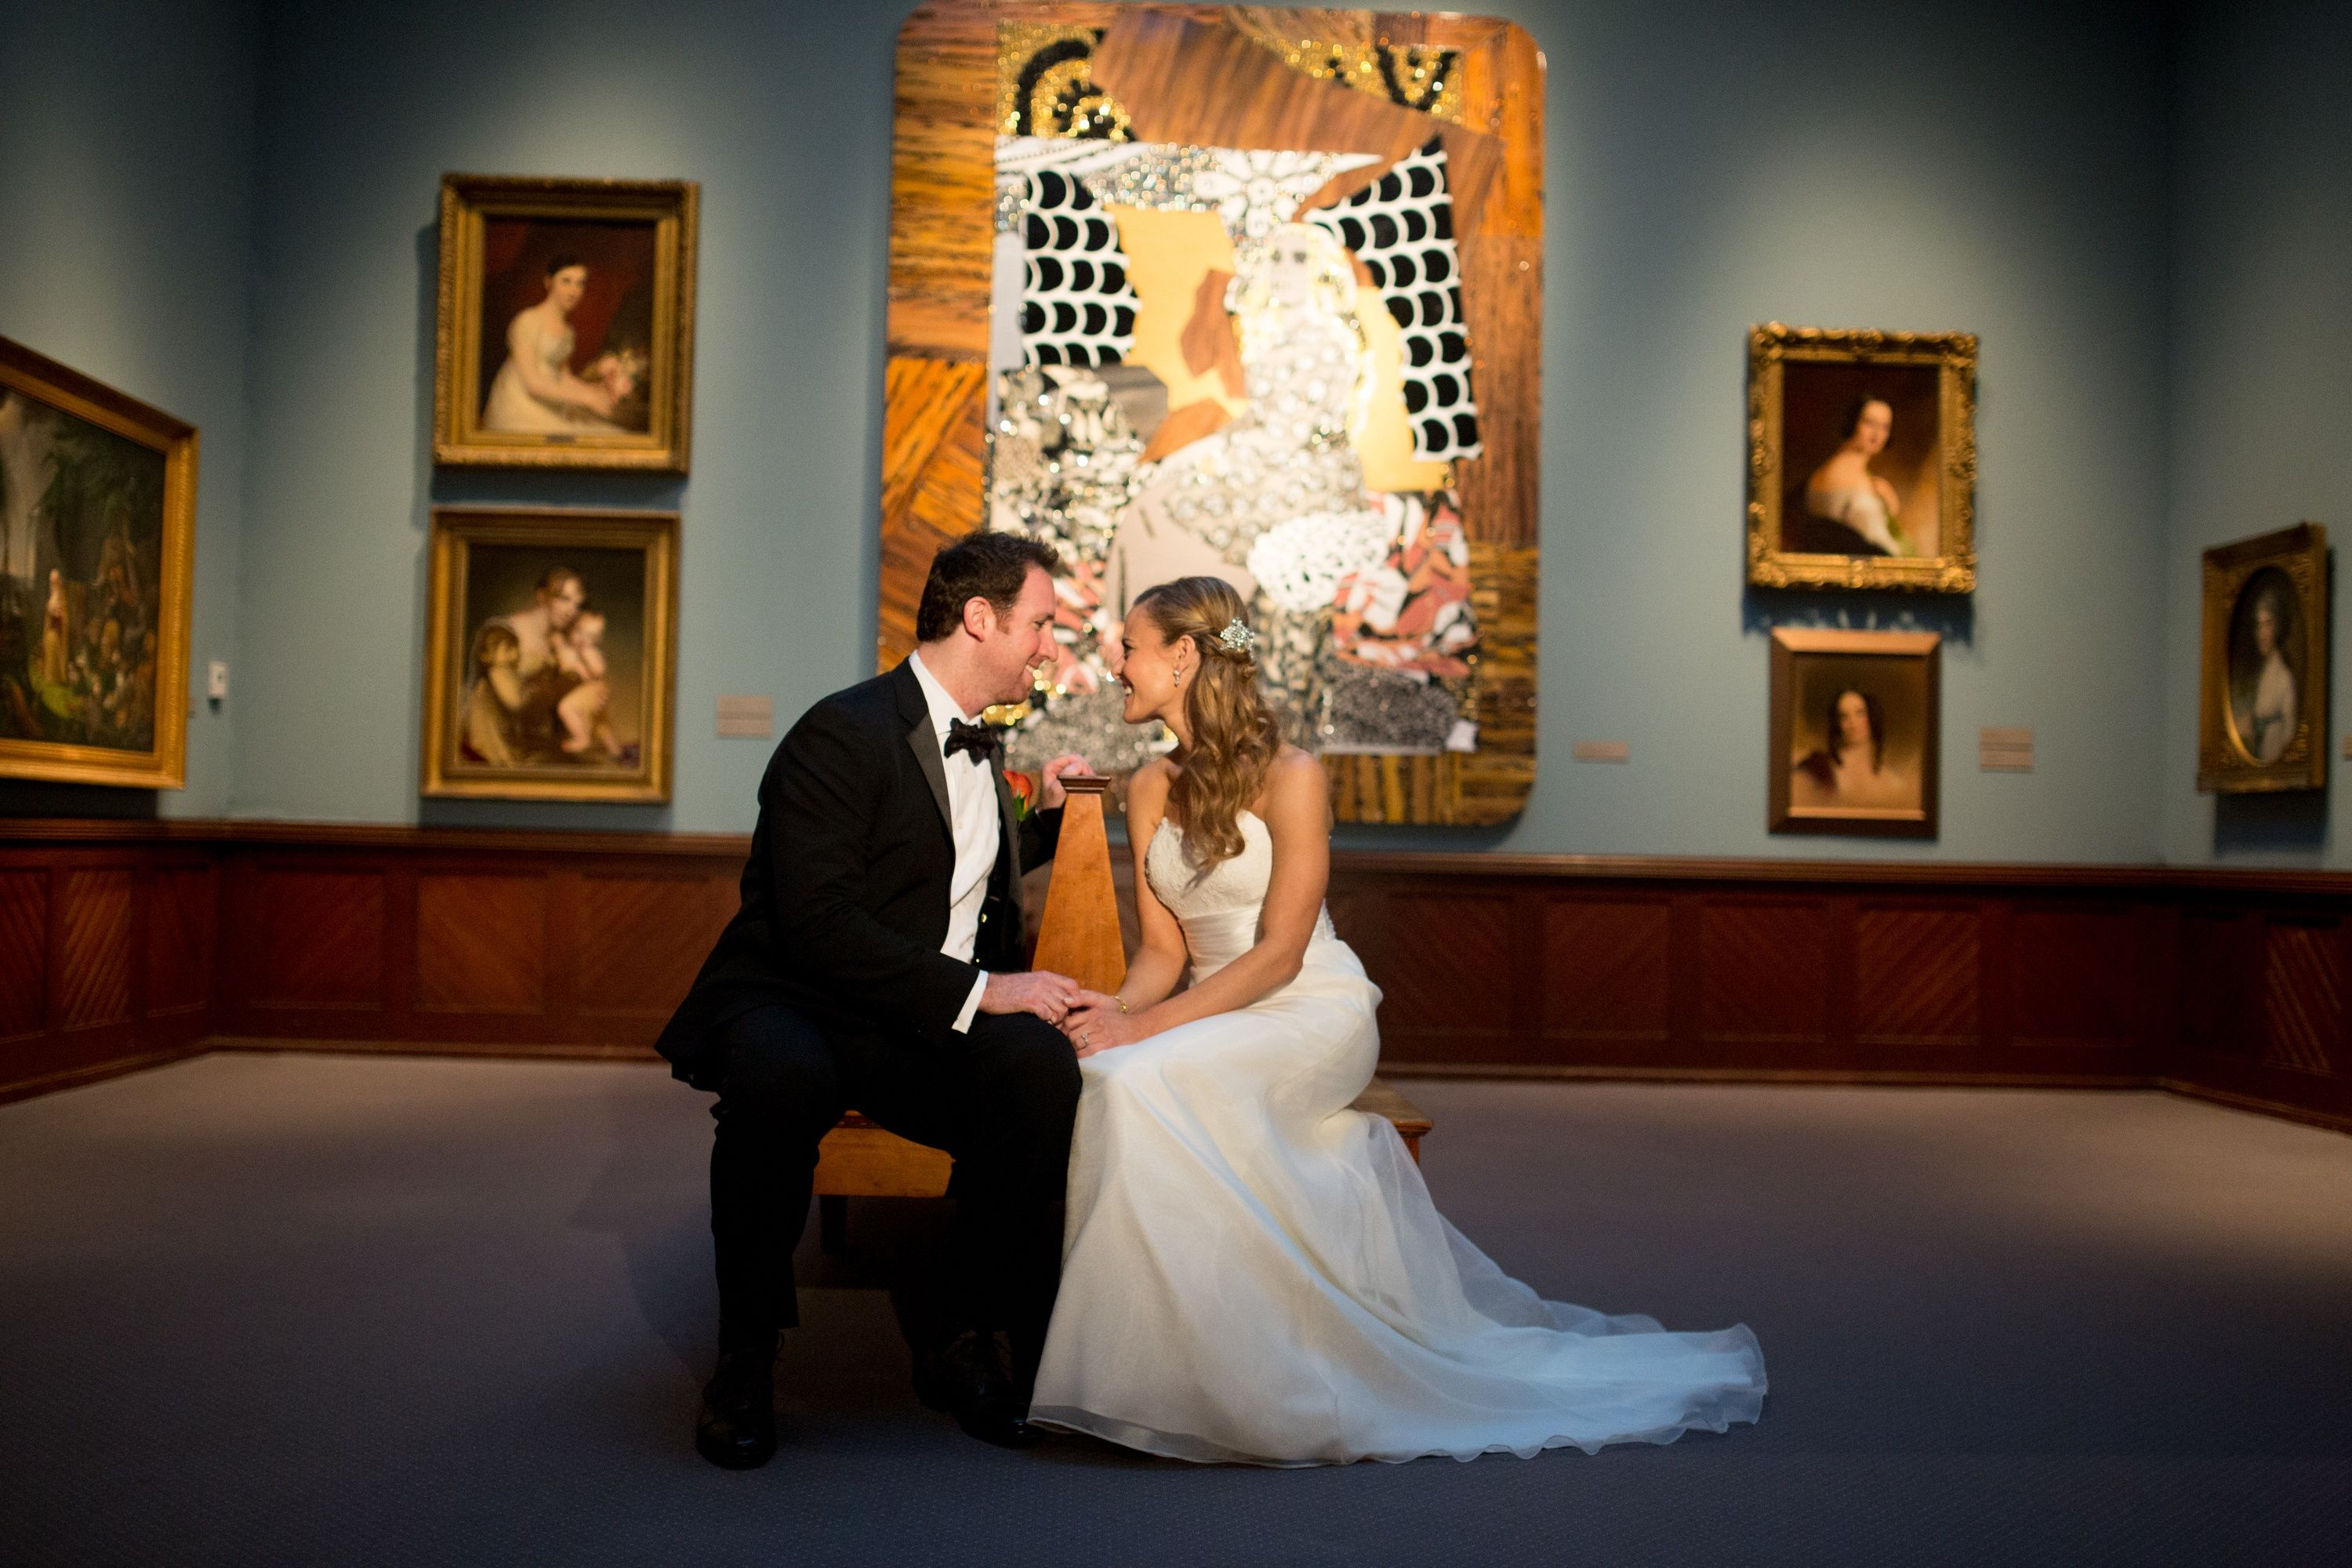 A Formal Wedding at the Philadelphia Academy of Fine Arts in ...